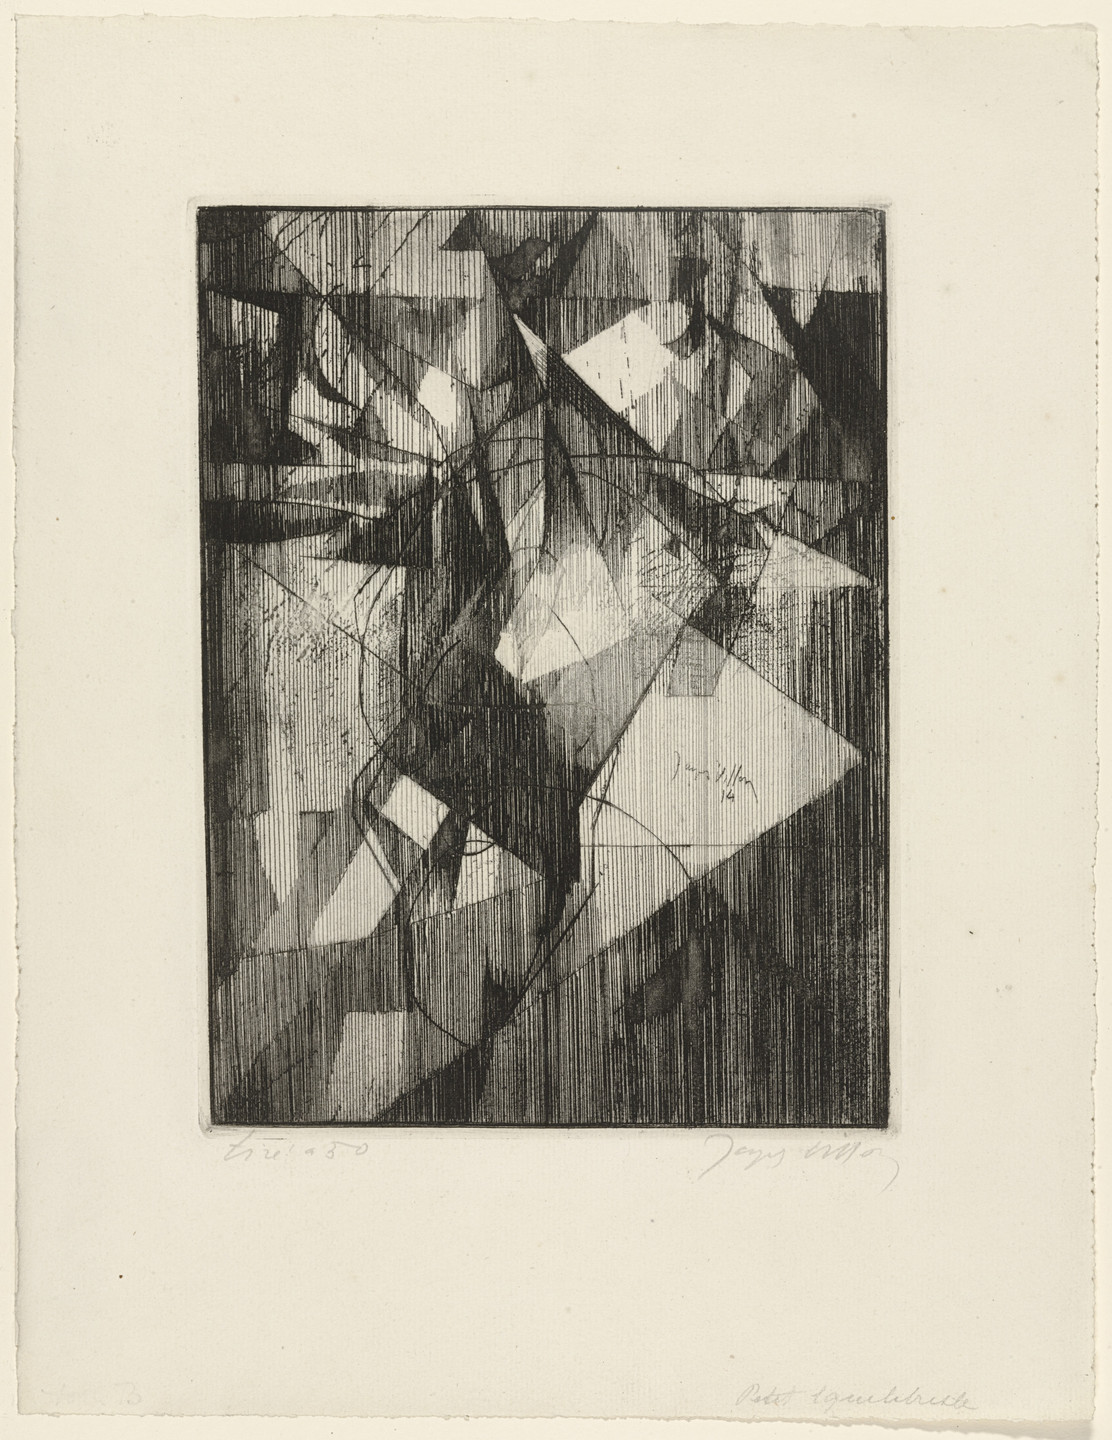 Jacques Villon. The Small Equilibrist (Le Petite équilibriste). 1914